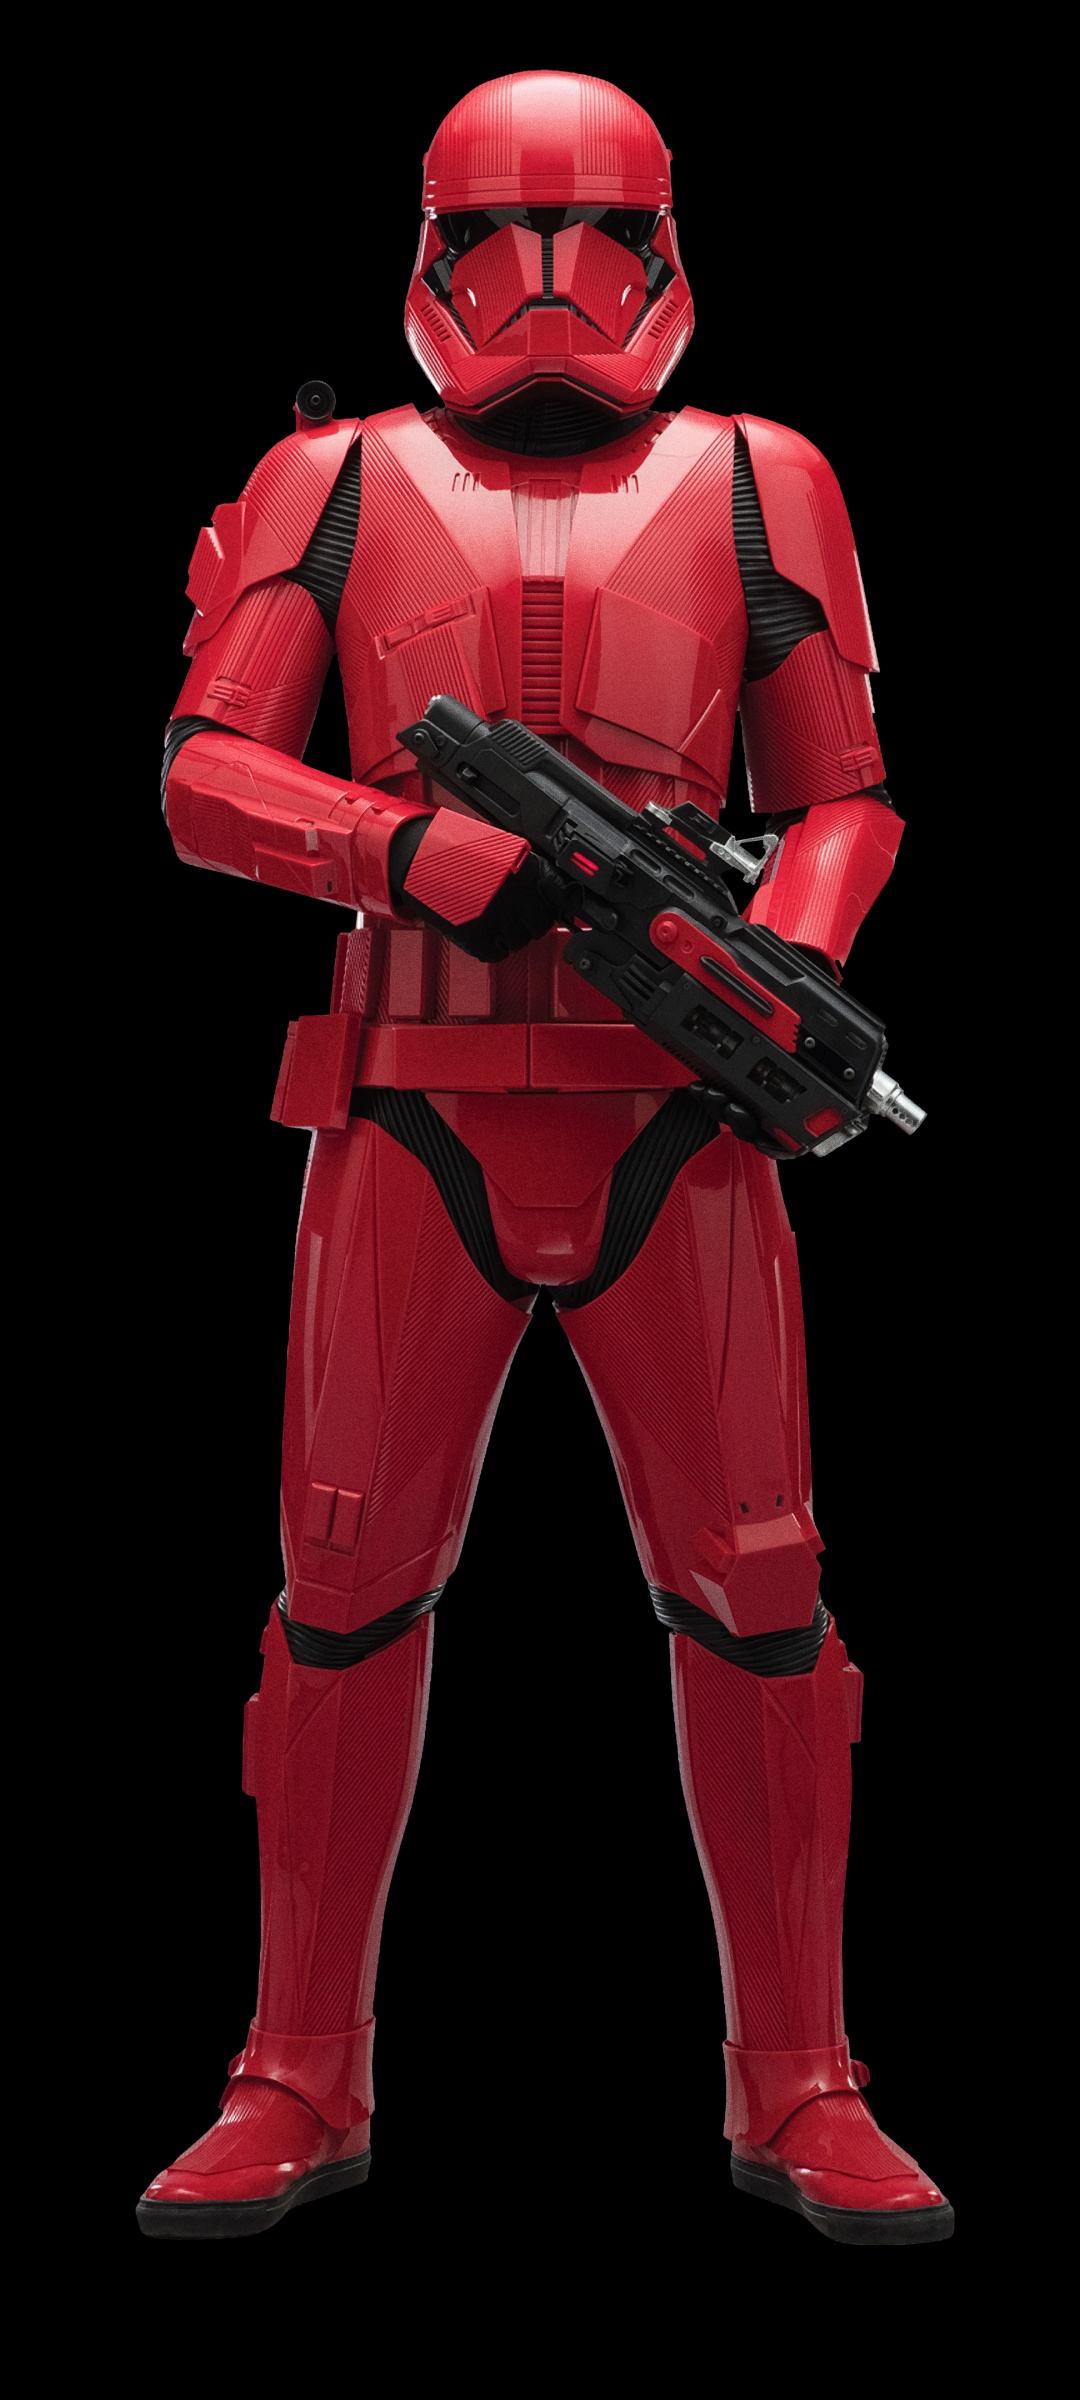 sith trooper star wars the rise of skywalker black 1080x2400 876